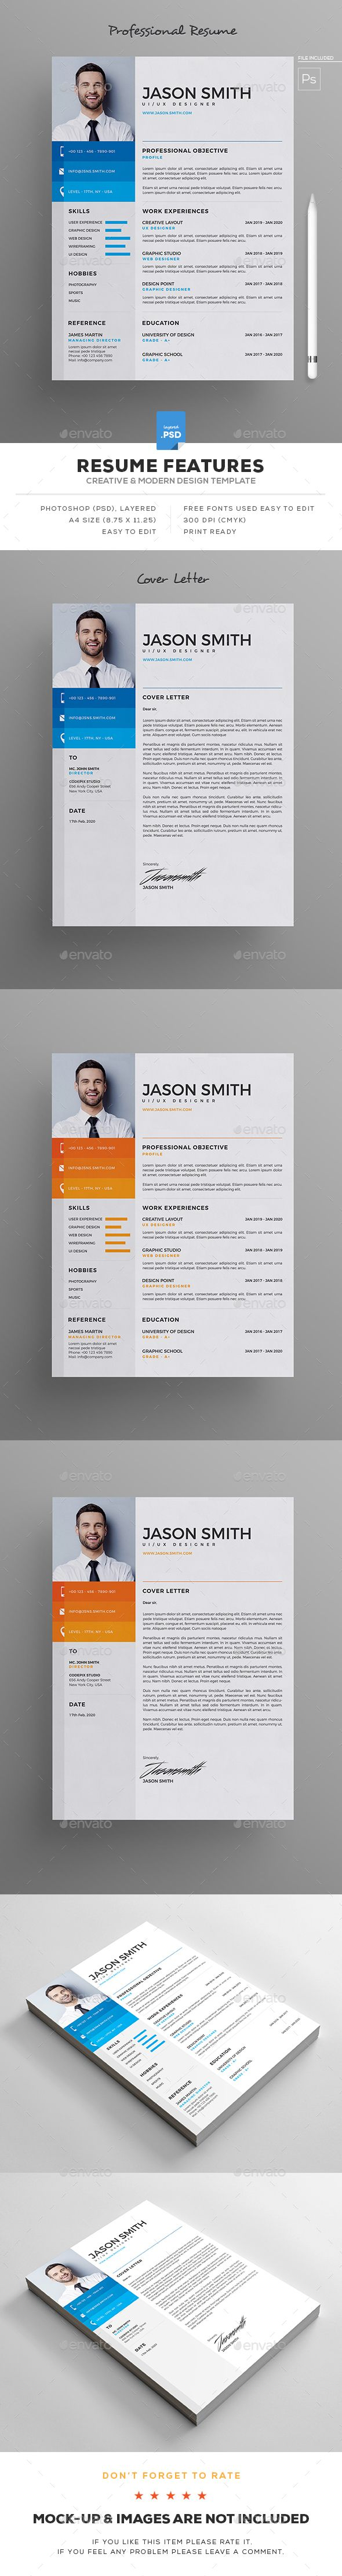 pin de maria alena en best resume templates